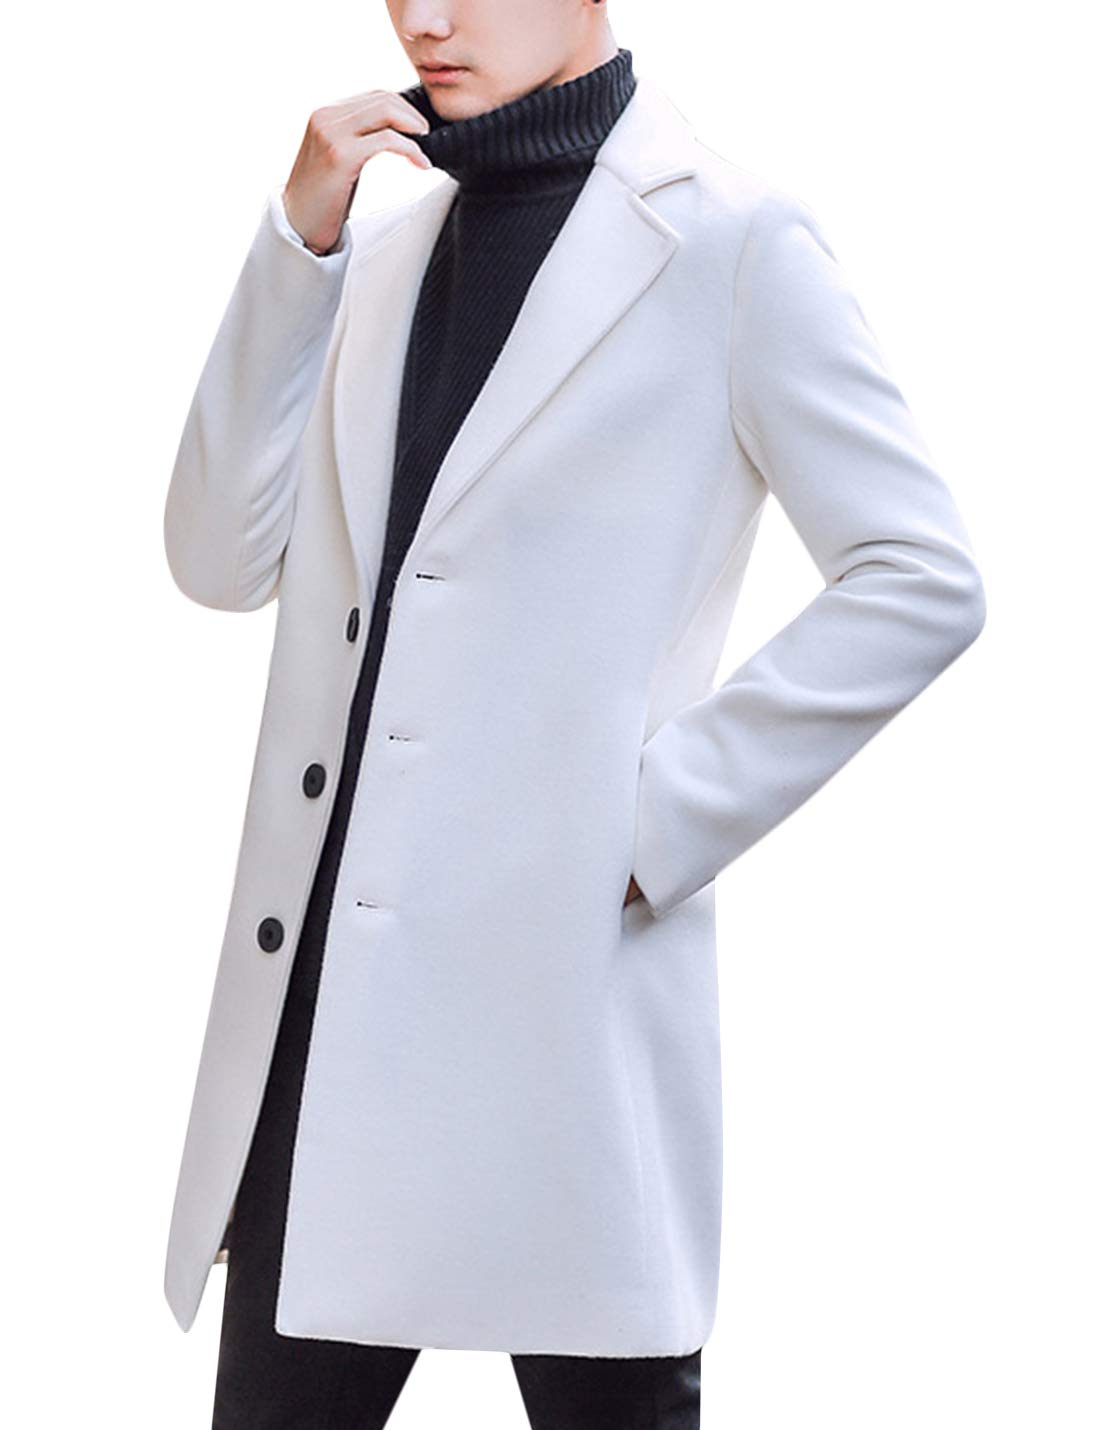 Springrain Men's Notched Lapel Single Breasted Long Pea Coat Trench Coat (White, Large) by Springrain